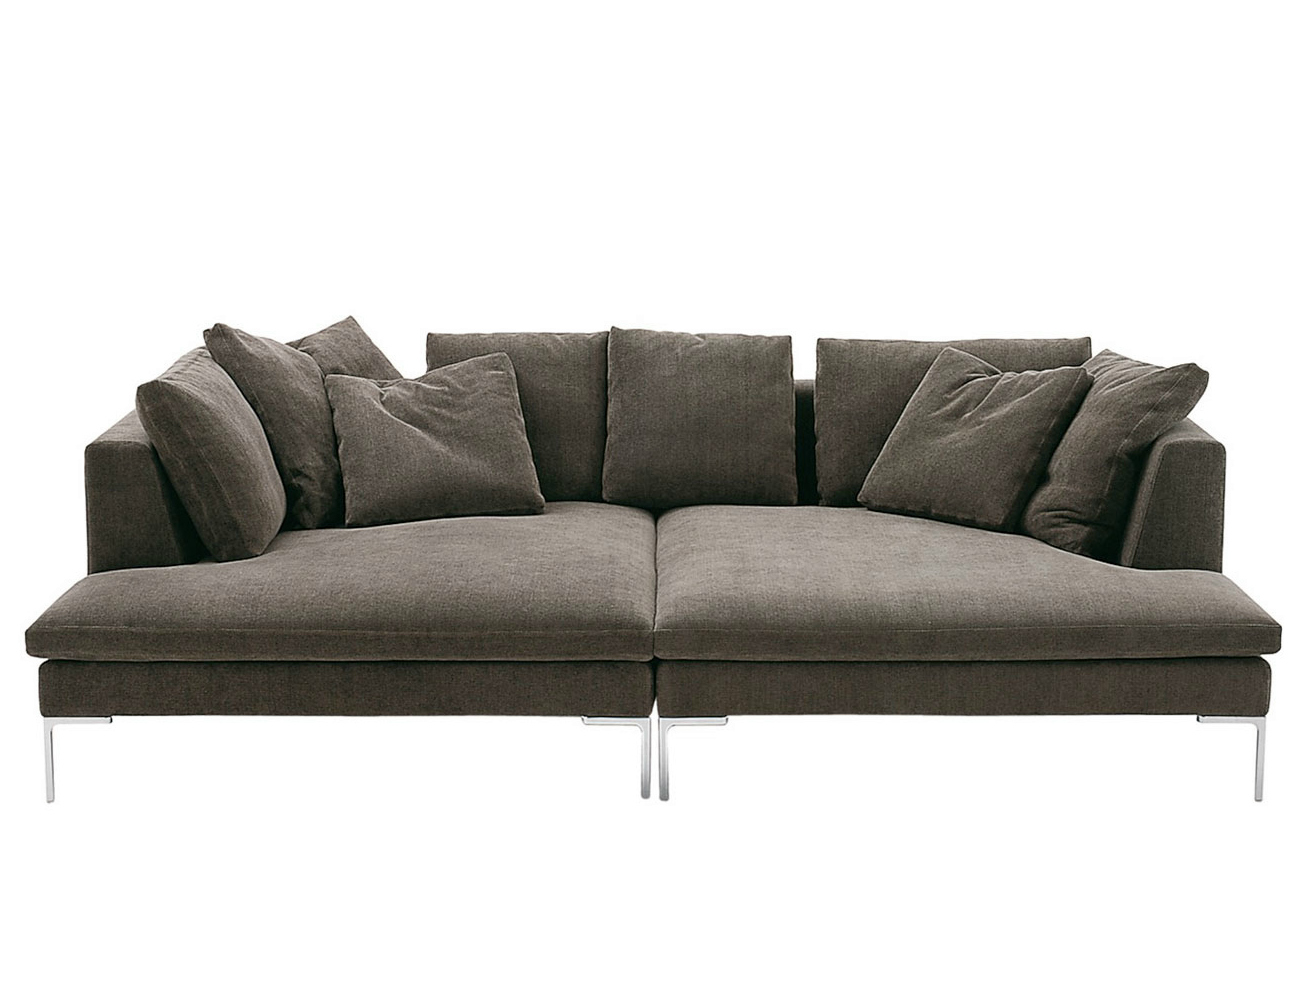 charles large sectional sofa by b b italia design antonio citterio. Black Bedroom Furniture Sets. Home Design Ideas